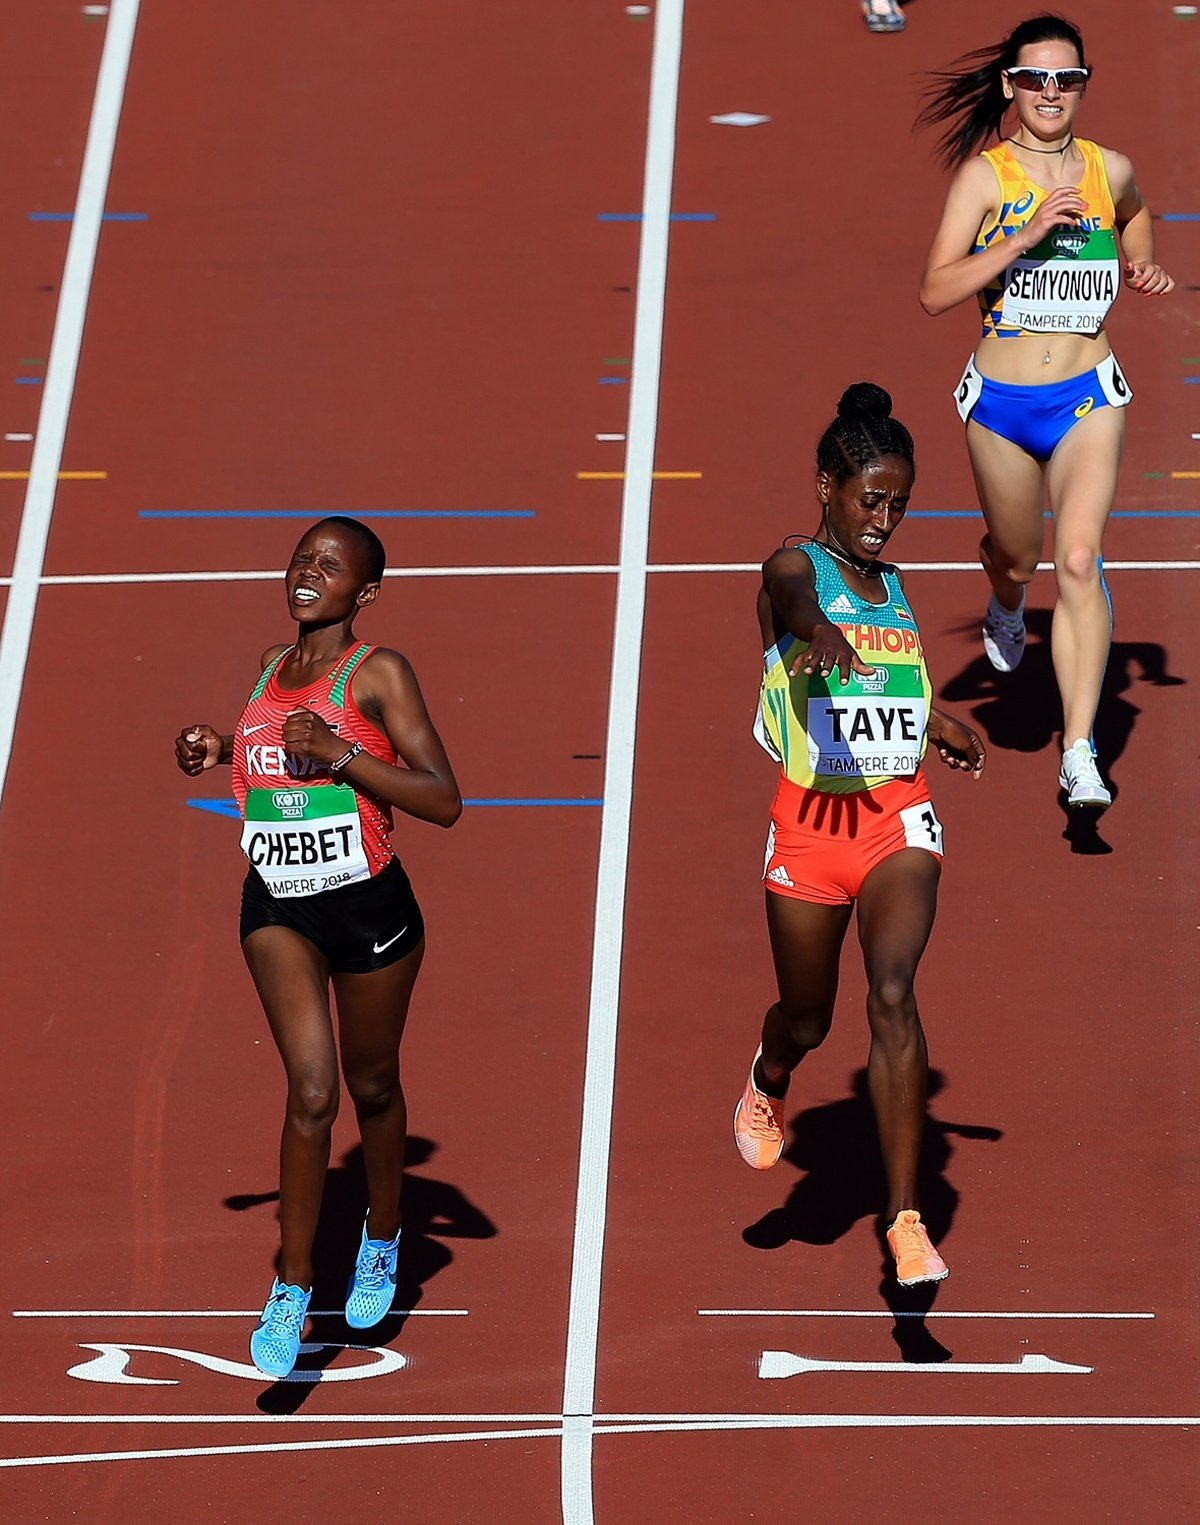 Beatrice Chebet wins the women's 5000m ahead of Ethiopia Ejegayehu Taye at the IAAF World U20 Championships Tampere 2018 (Getty Images for the IAAF)